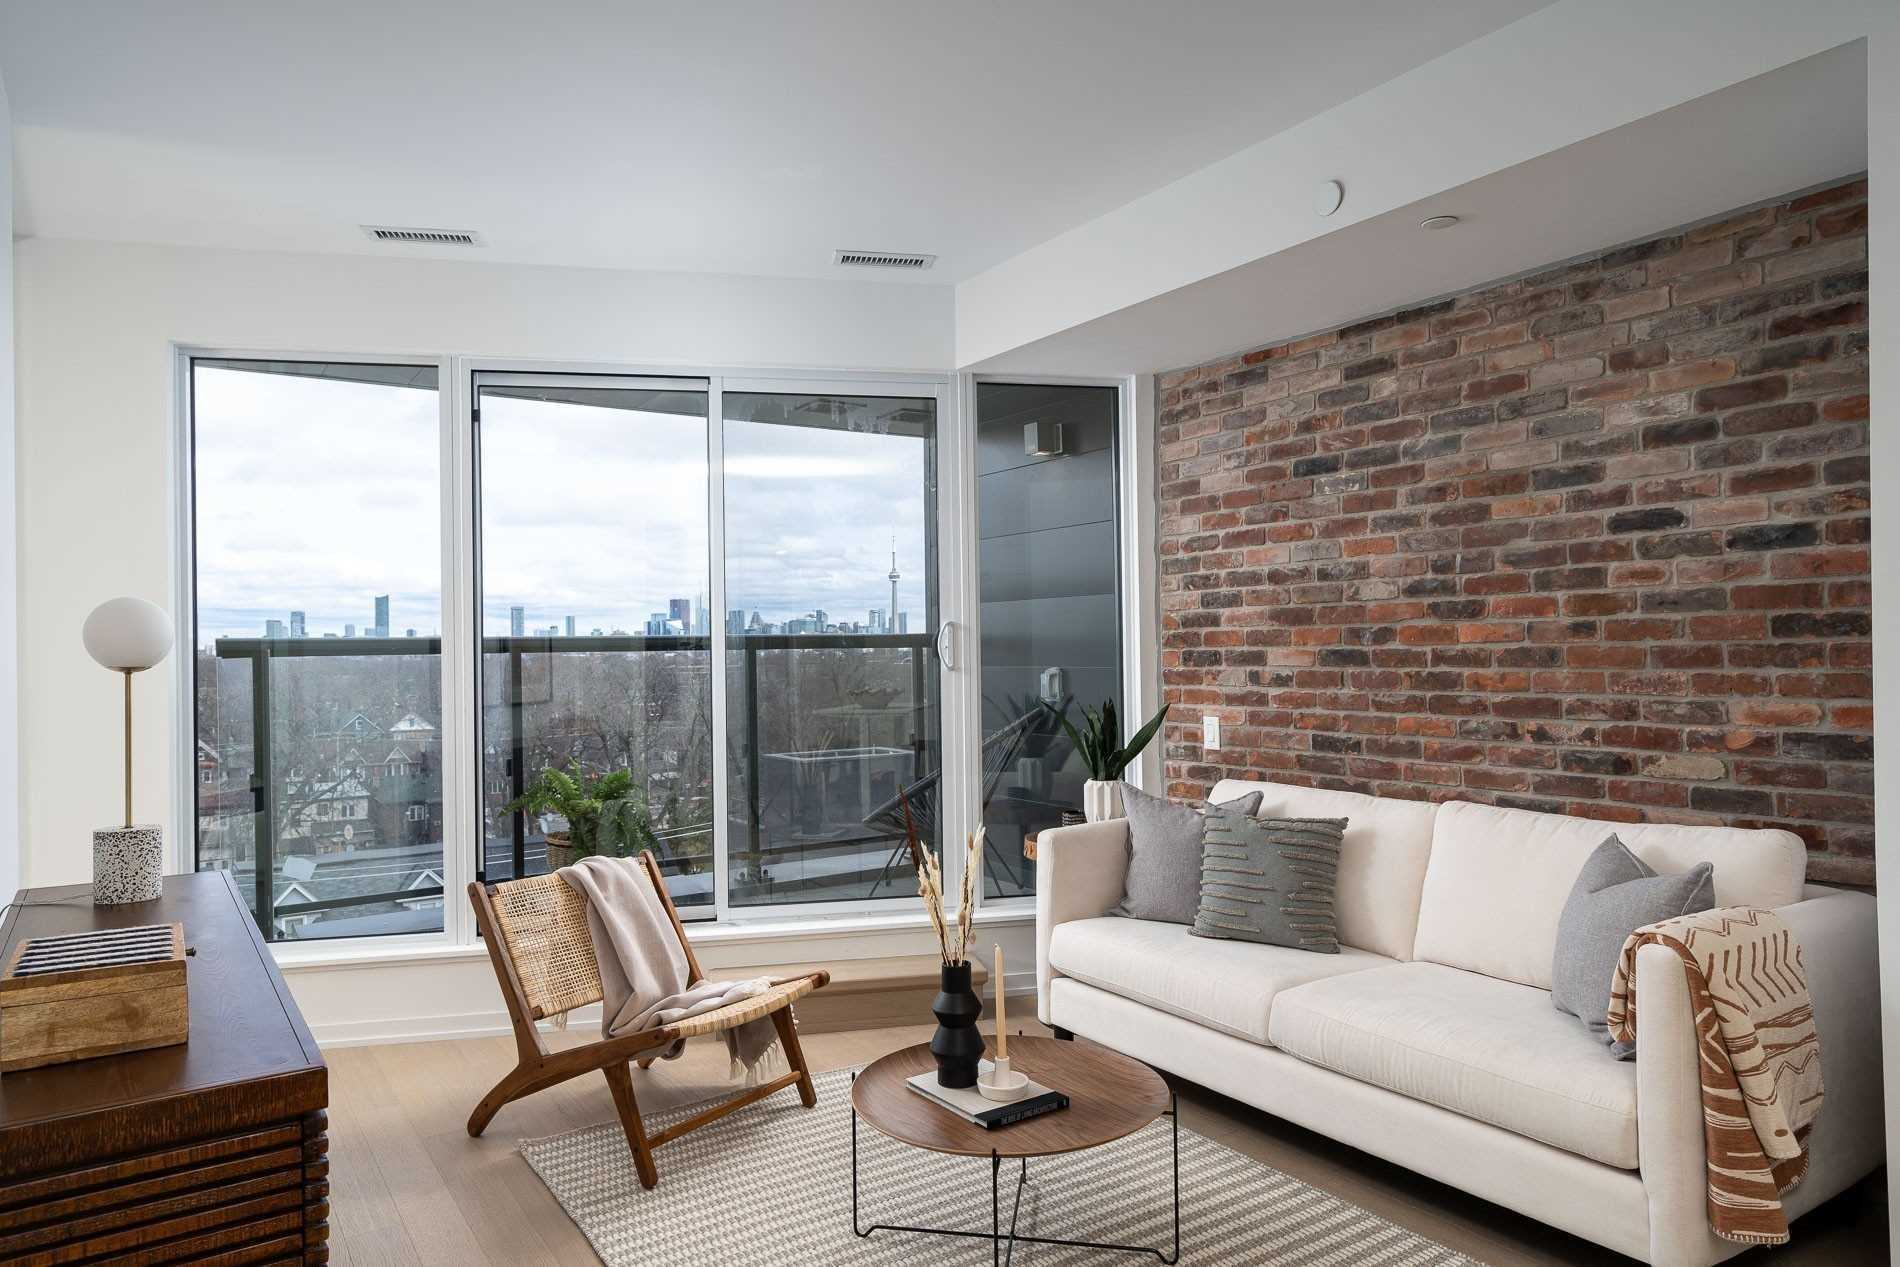 138 St Helen's Ave, Toronto, Ontario M6H4A1, 2 Bedrooms Bedrooms, 4 Rooms Rooms,1 BathroomBathrooms,Condo Apt,For Sale,St Helen's,C4747886